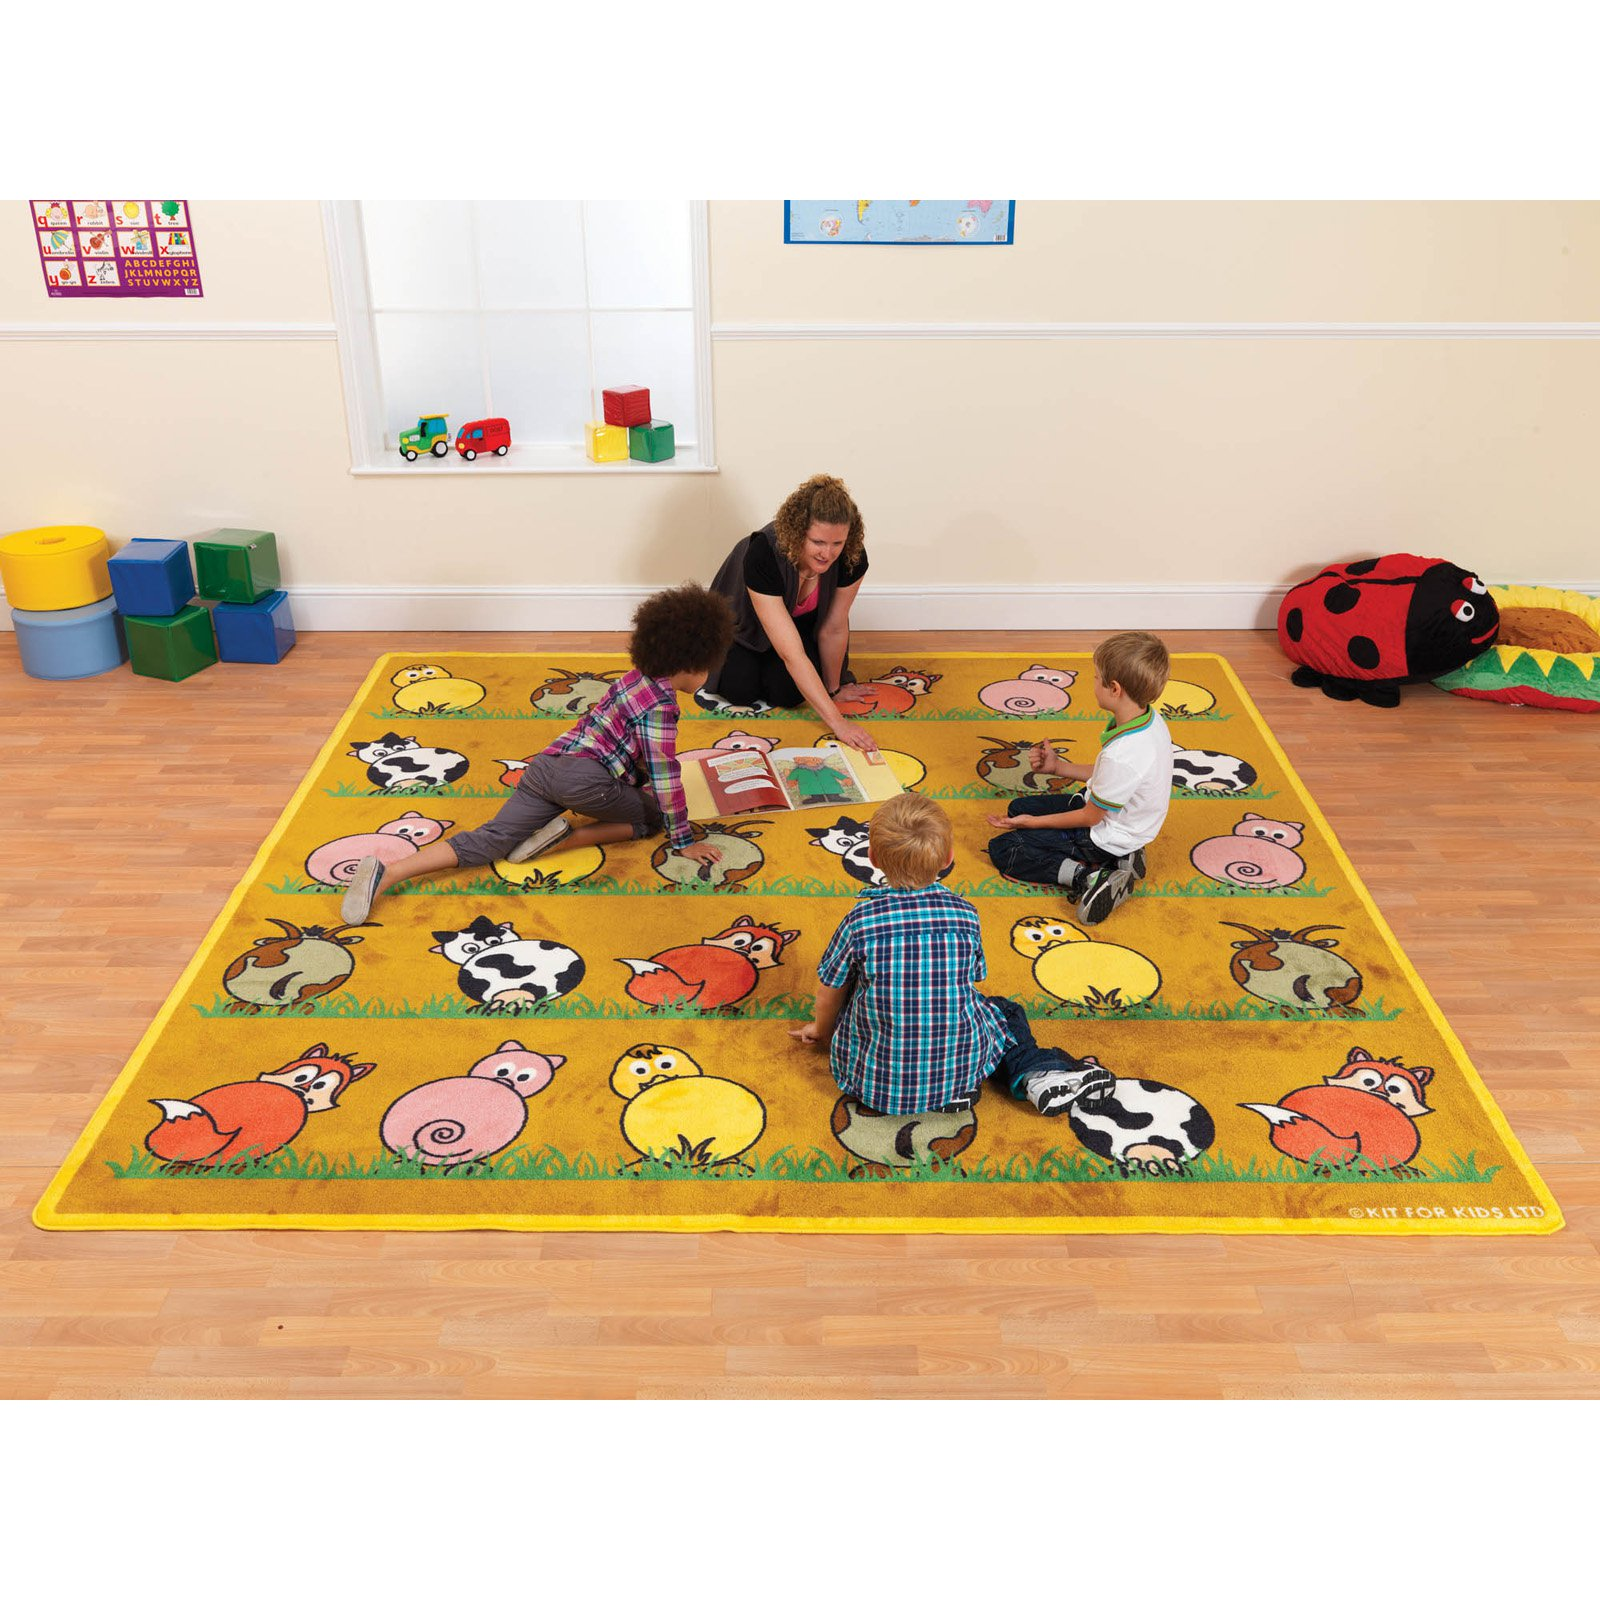 Kalokids Town & Country Farm Animals Placement Carpet